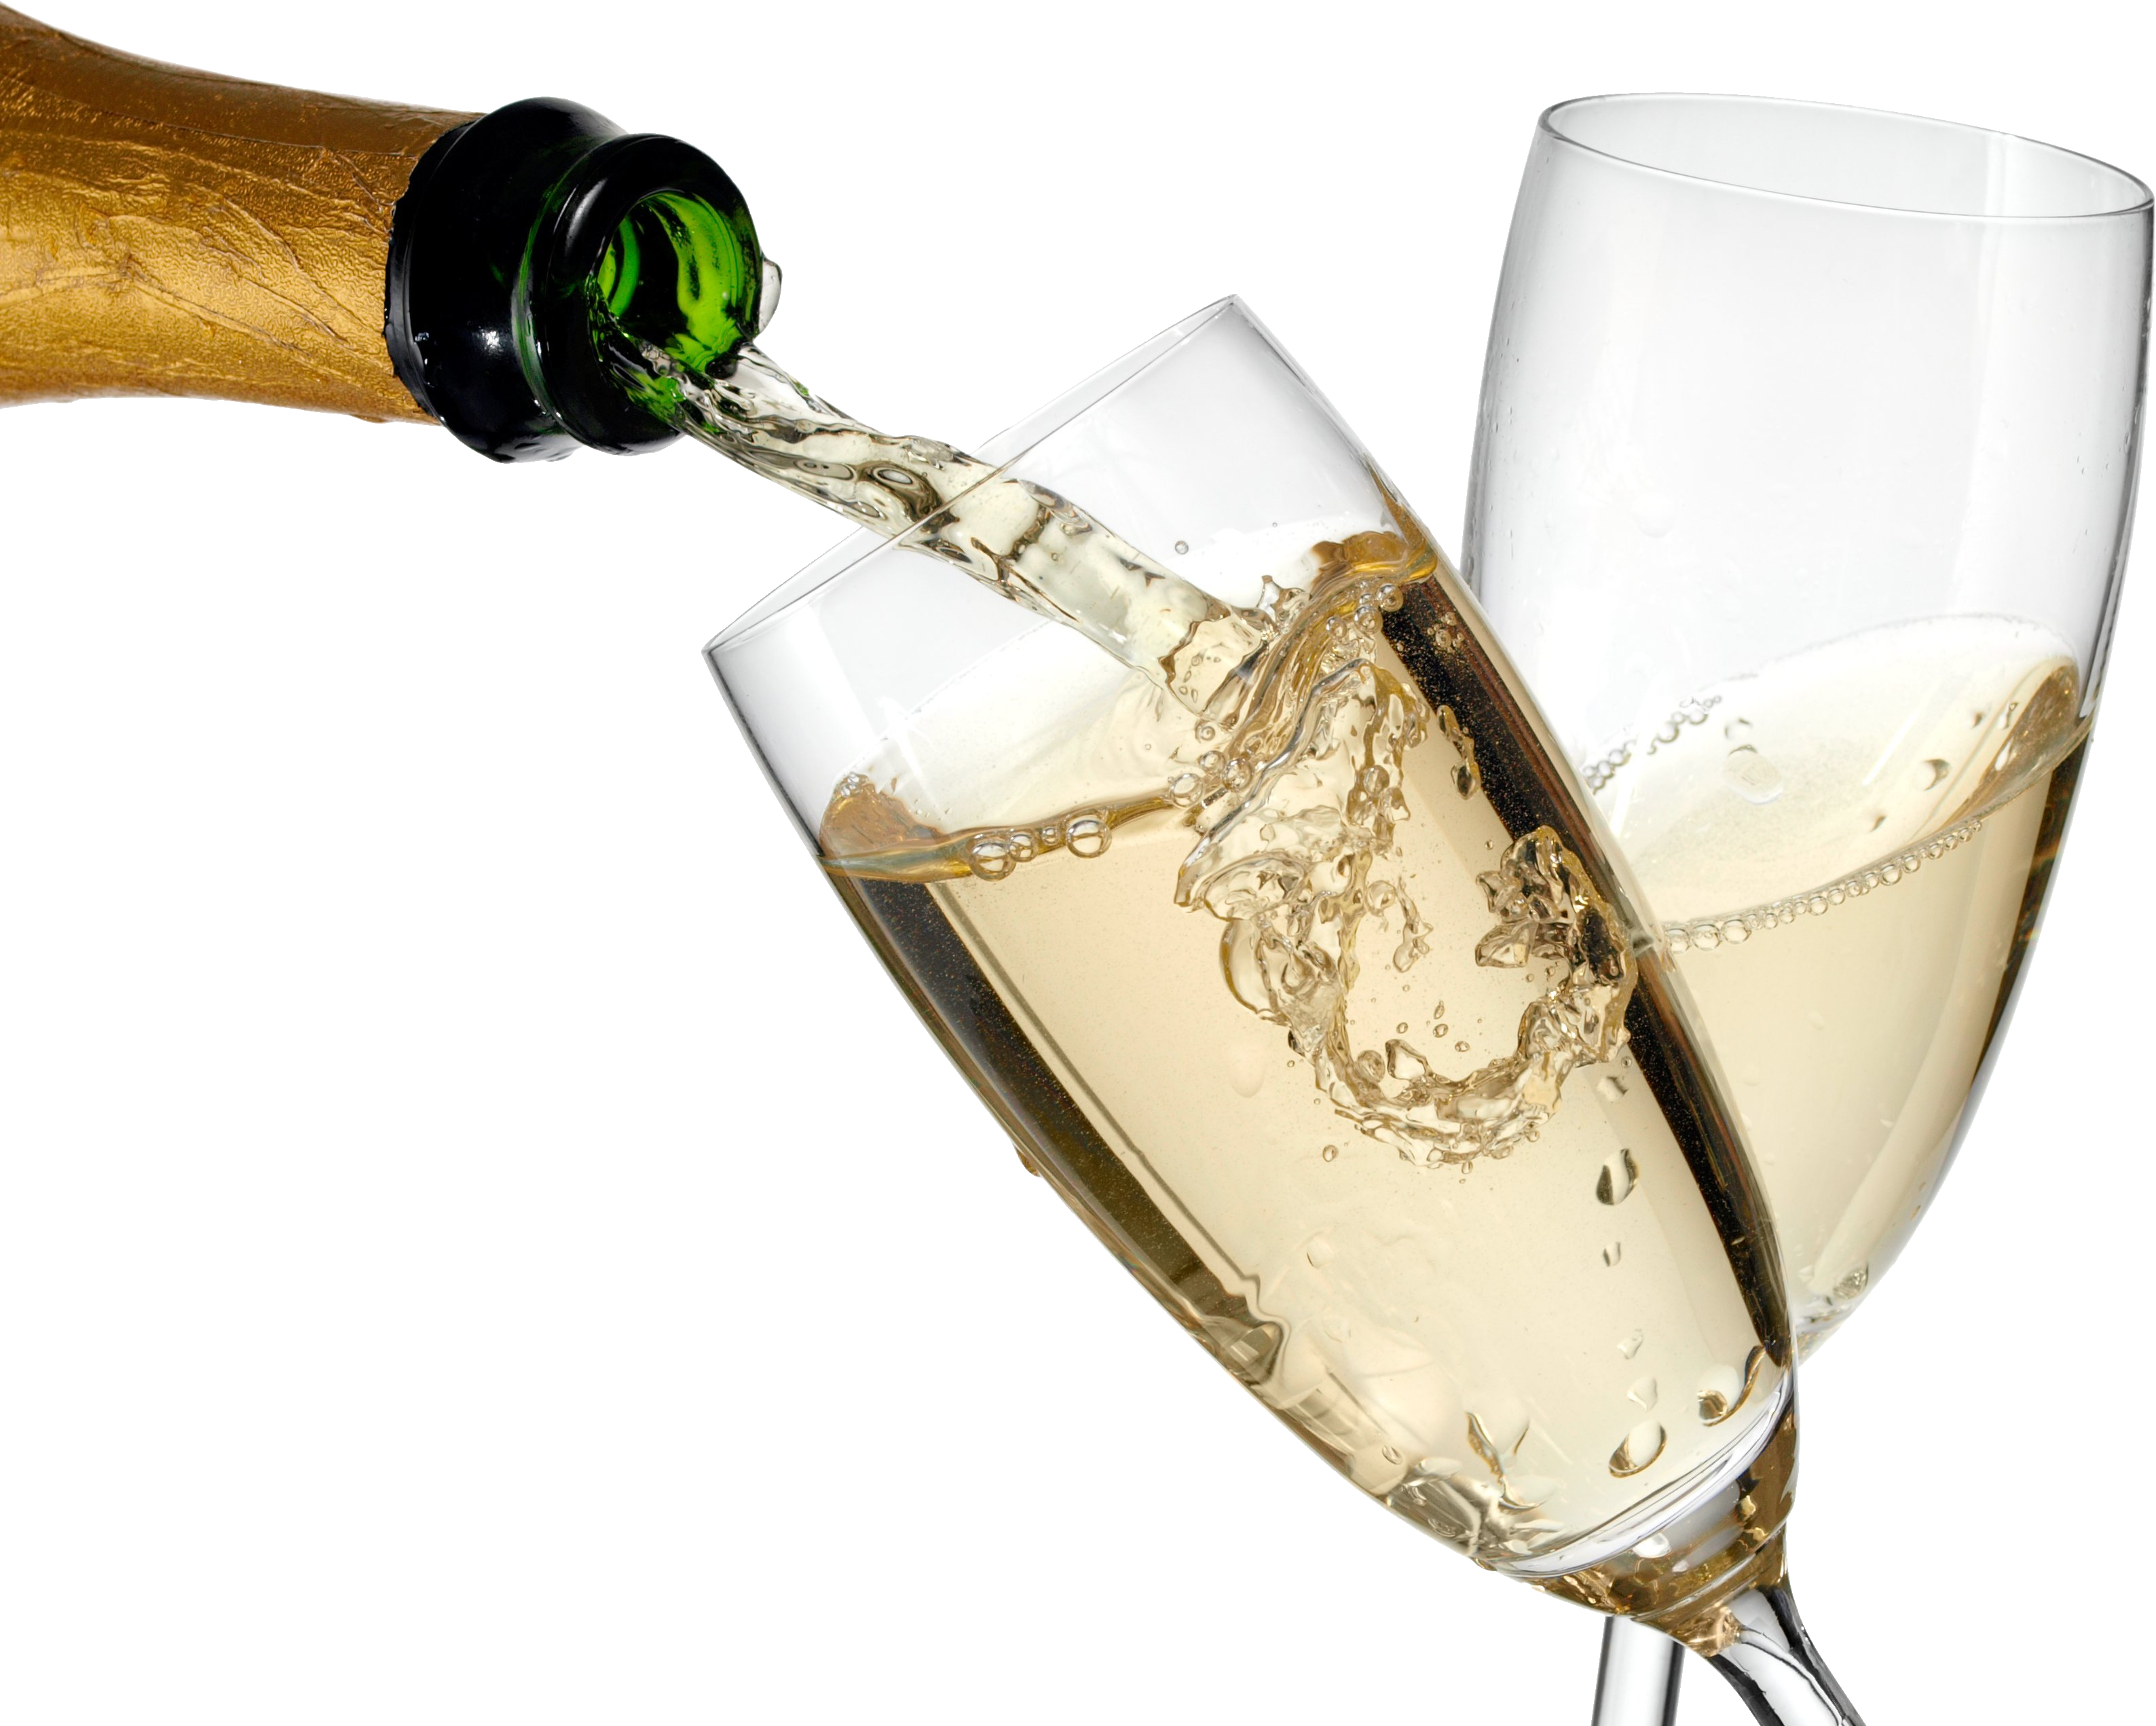 Alcohol pouring png. Champagne images bottle glass